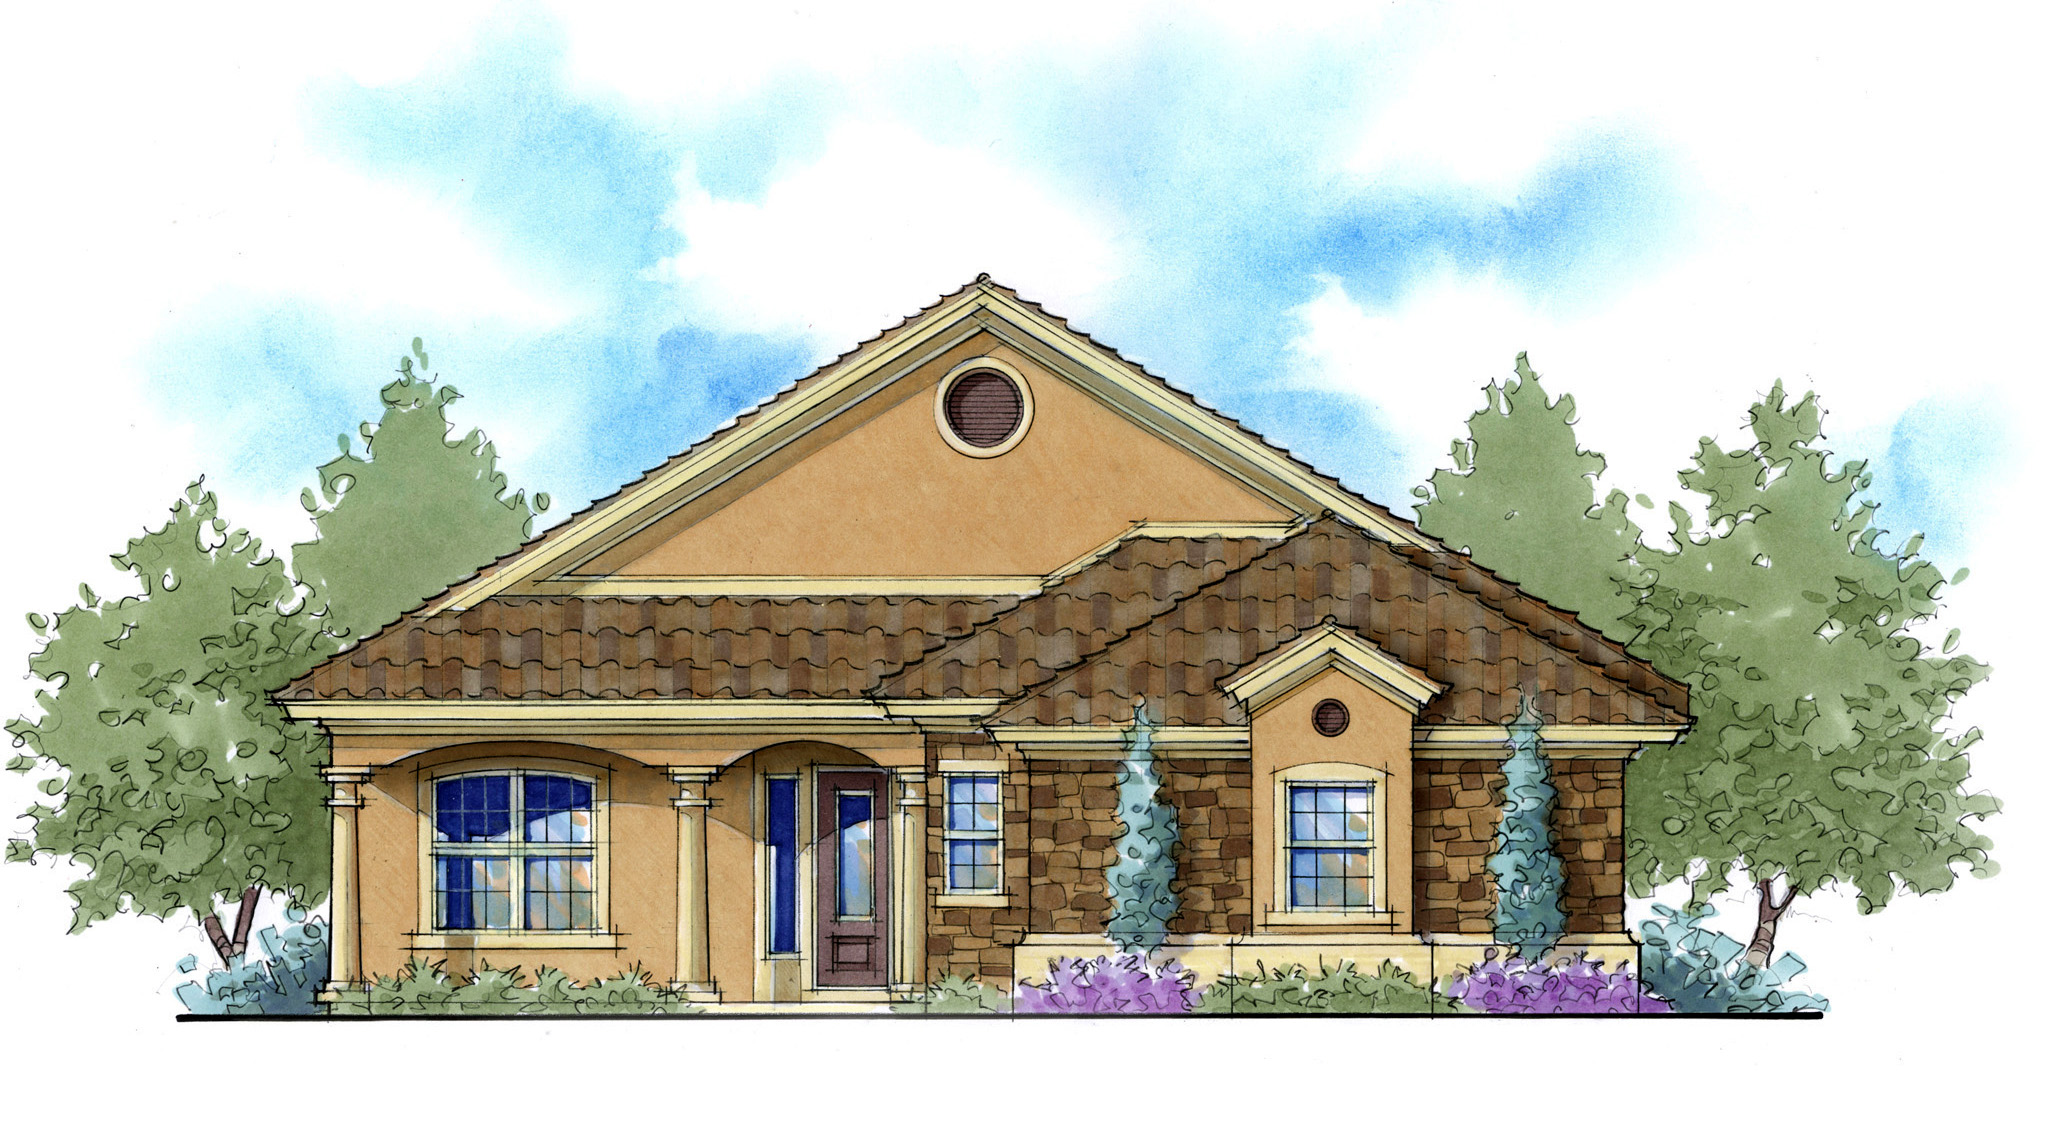 3 or 4 bedroom net zero ready home plan 33113zr 1st for Ready house plans